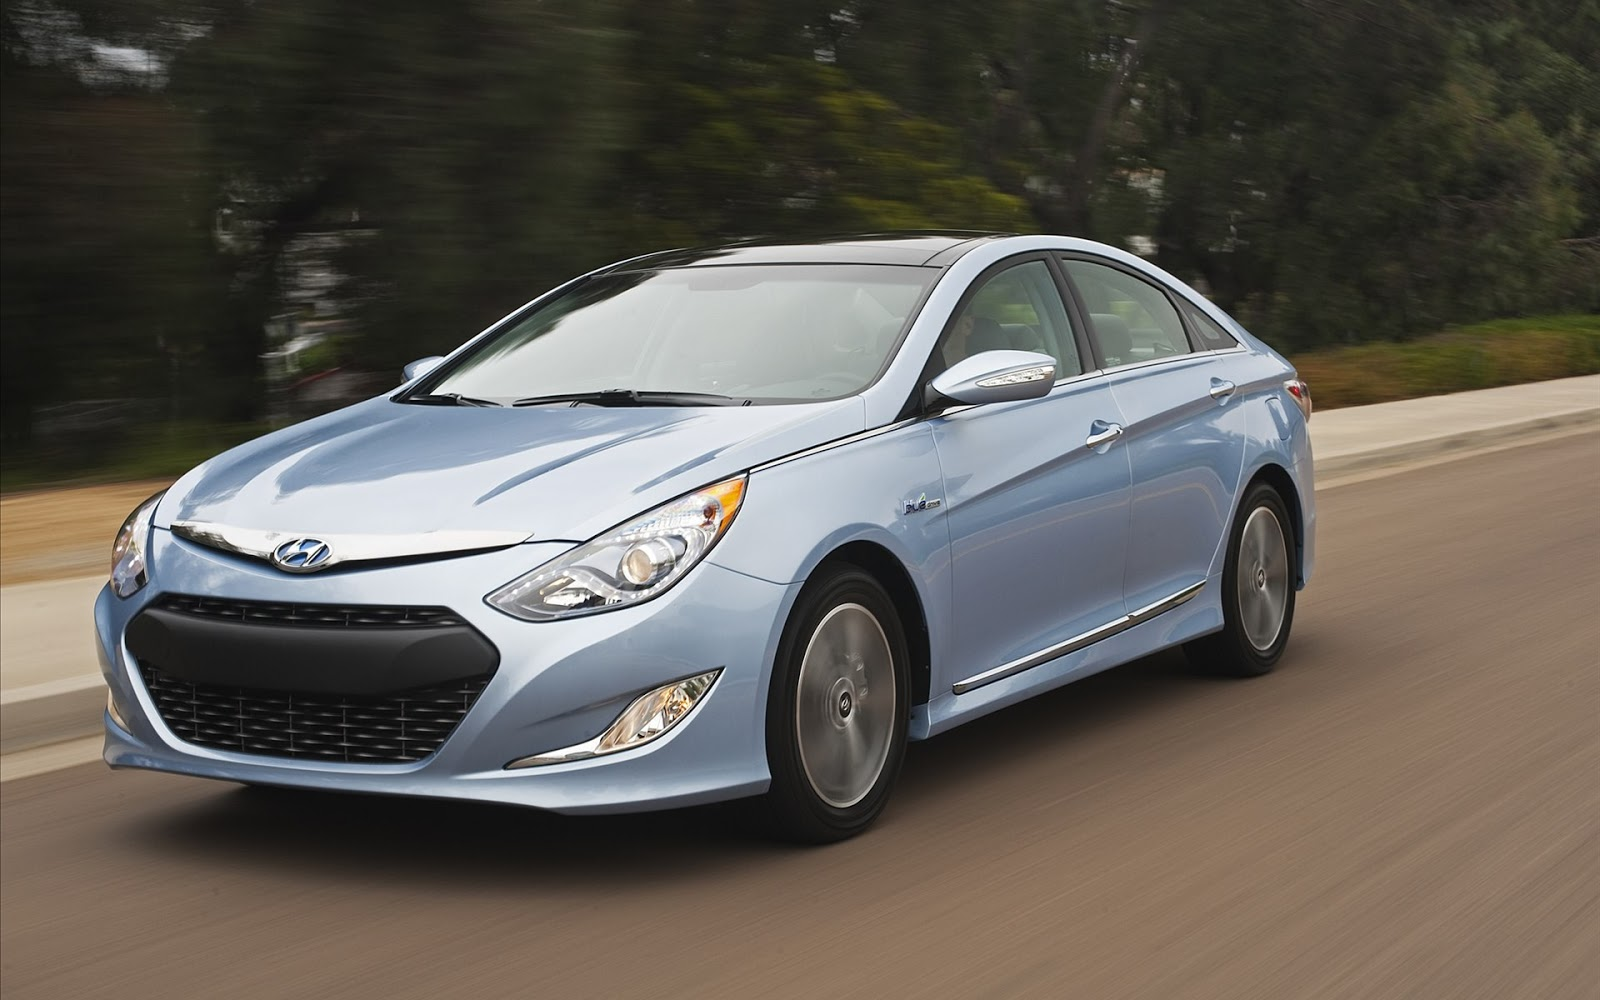 hyundai sonata hybrid cars prices wallpaper specs review. Black Bedroom Furniture Sets. Home Design Ideas